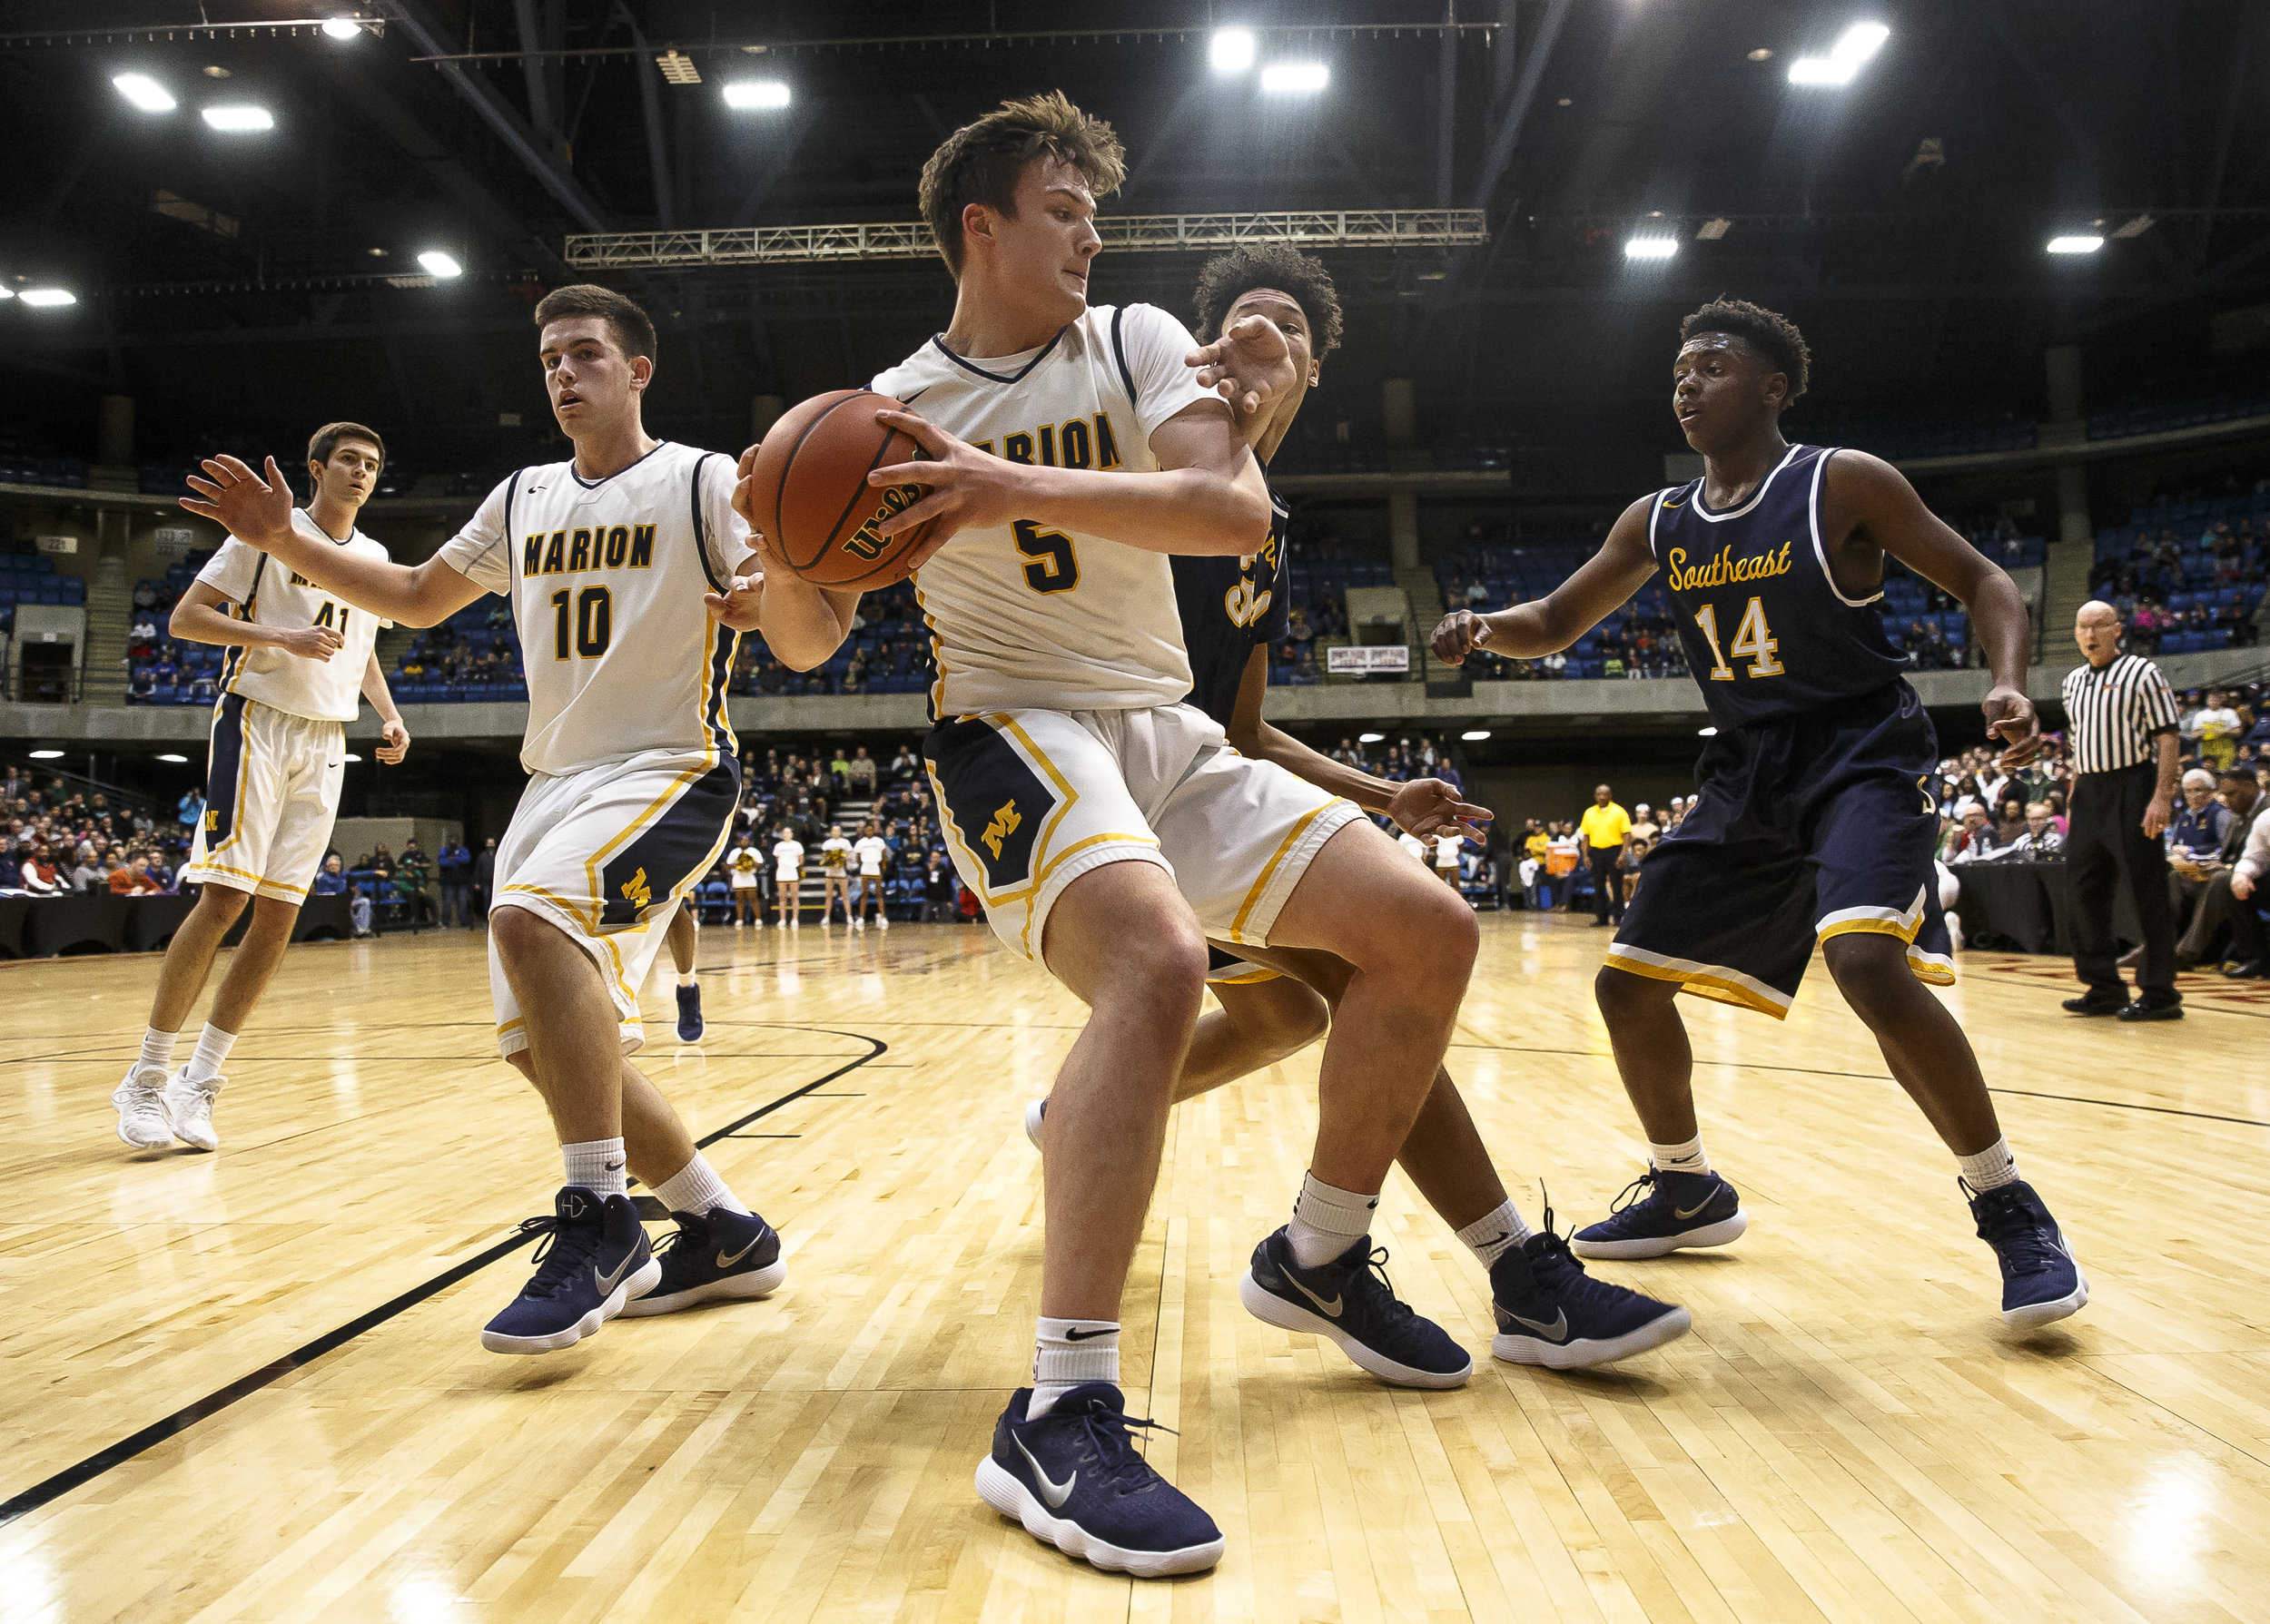 Marion's Jackson Connor (5) pulls in a rebound against Southeast's Michael Tyler (34) in the first half during the Class 3A Springfield Supersectional at the Bank of Springfield Center, Tuesday, March 13, 2018, in Springfield, Ill. [Justin L. Fowler/The State Journal-Register]